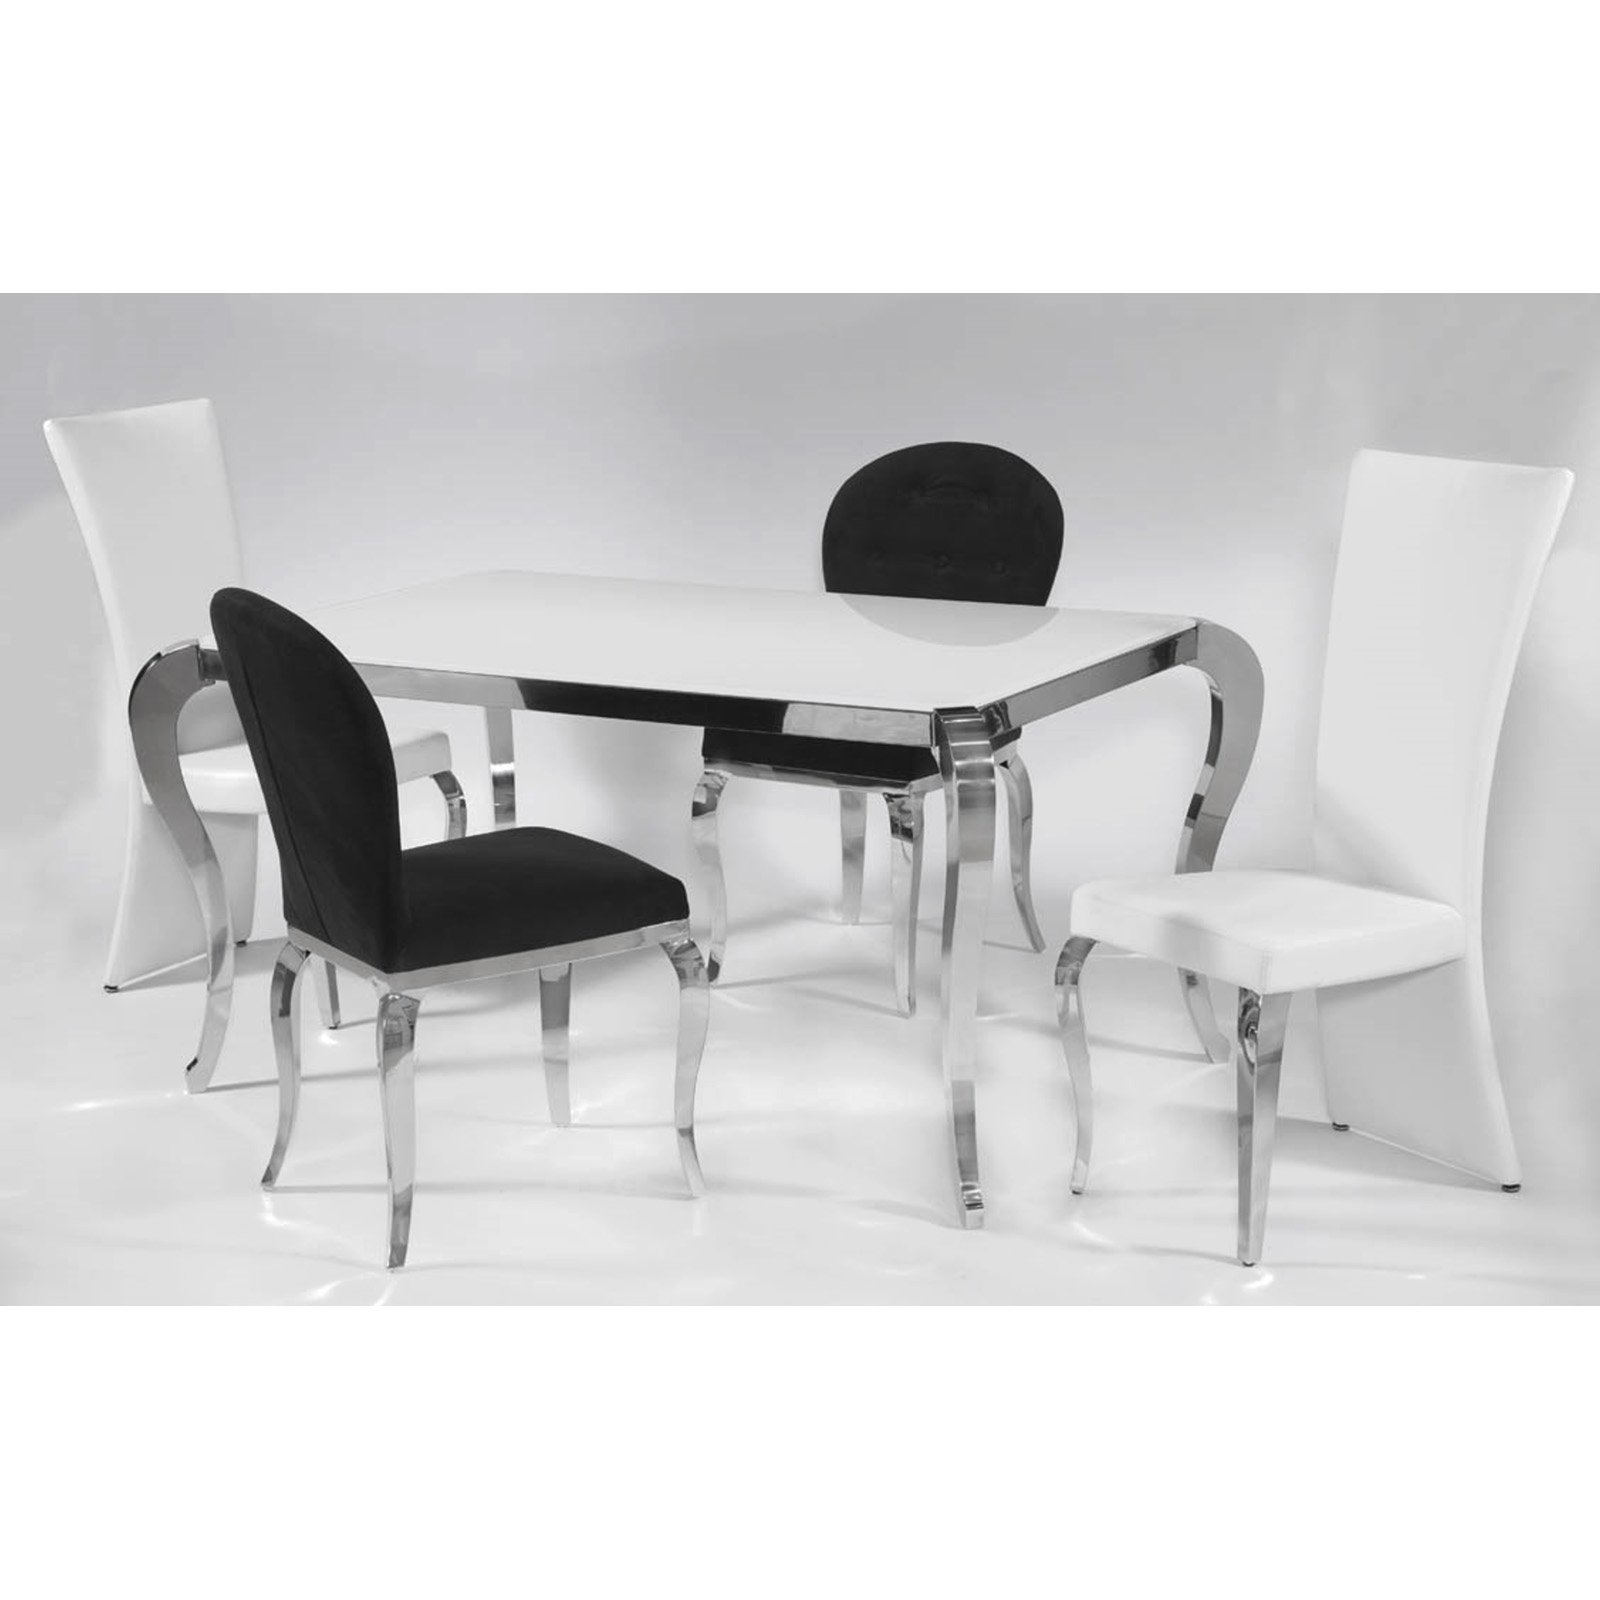 Most Up To Date Chintaly Teresa 5 Piece Dining Table Set – Walmart For Chrome Dining Tables And Chairs (View 11 of 25)